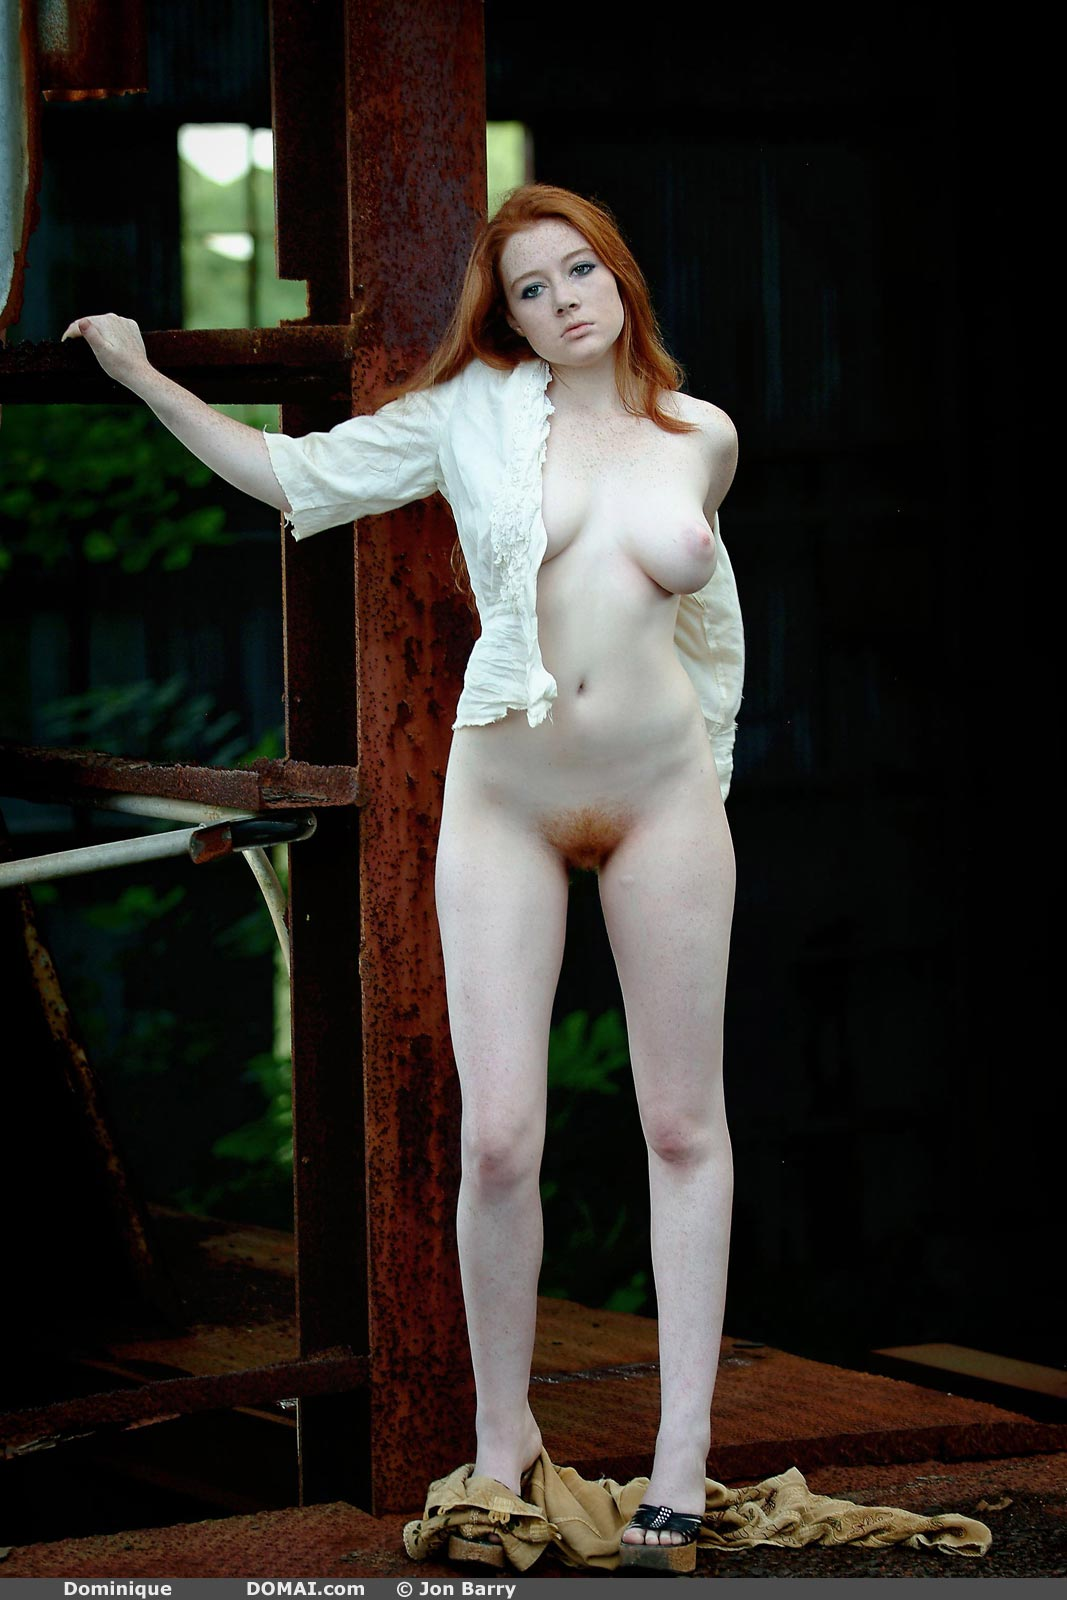 Dominique Beautiful Redhead - NudesPuri.com